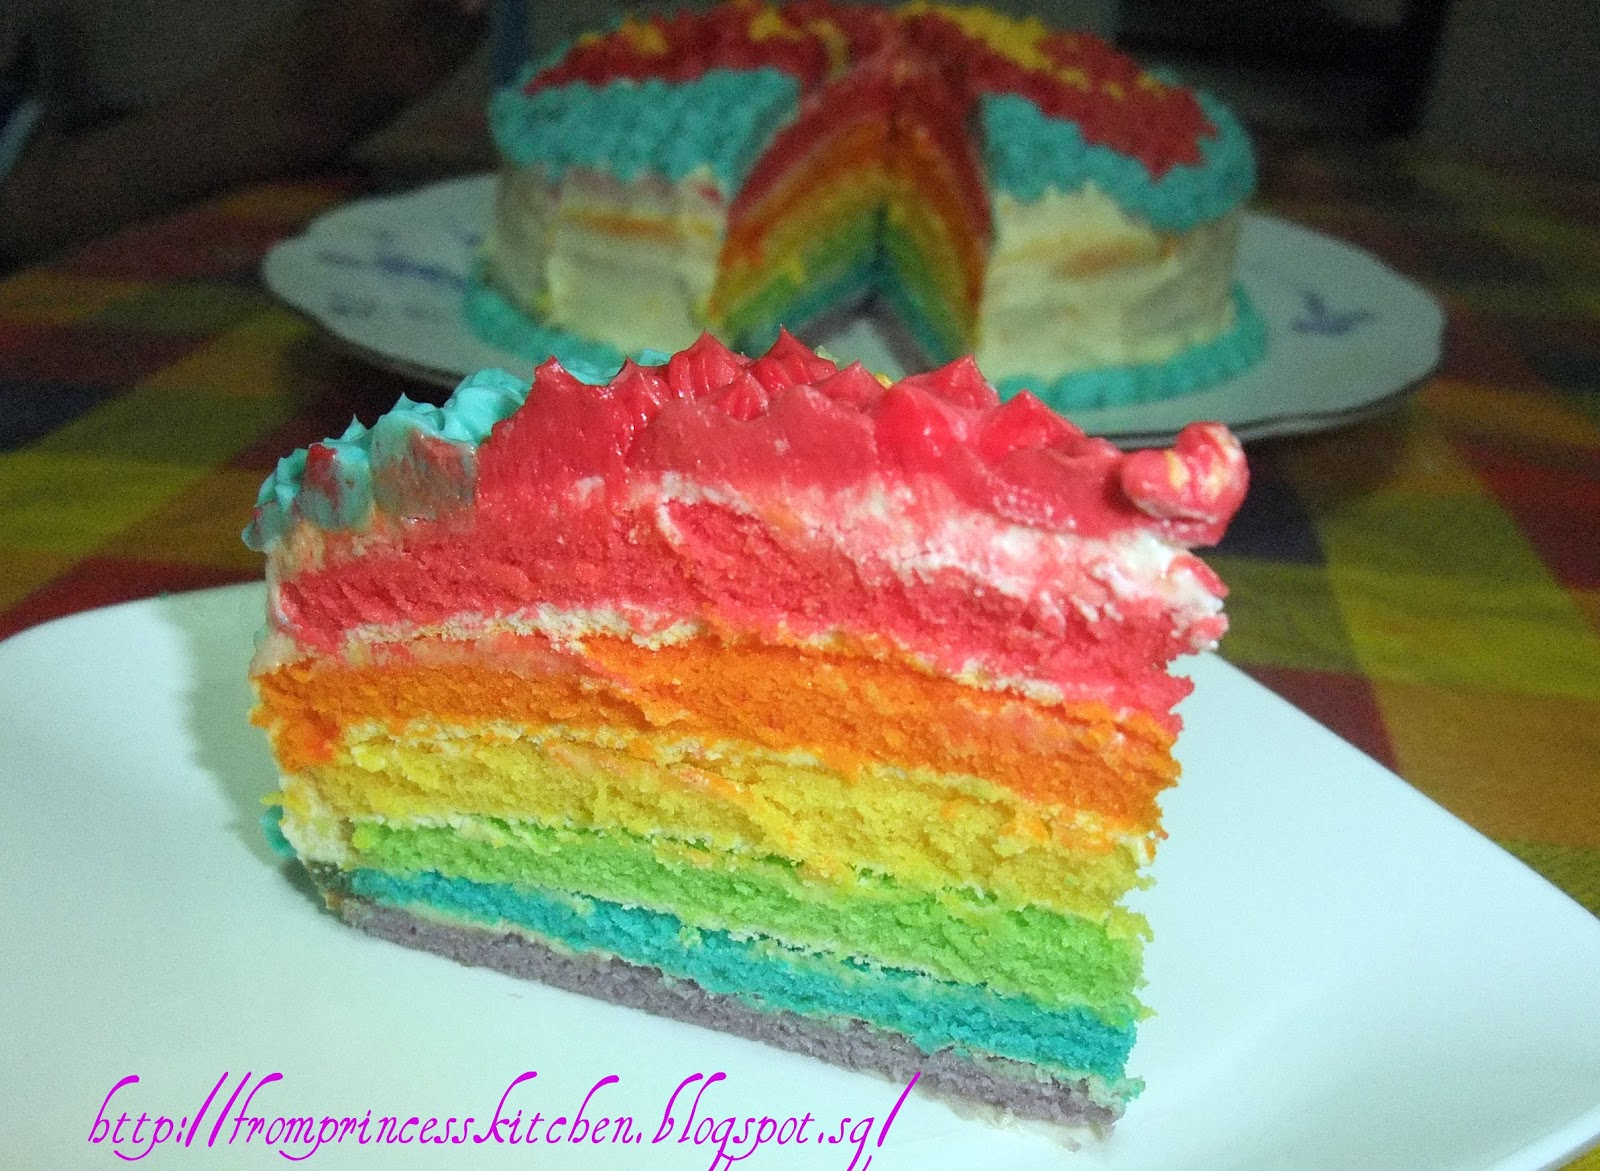 Resep Rainbow Cake Jtt: COOKING WITH LOVE: RAINBOW CAKE WITH CREAM CHEESE FROSTING